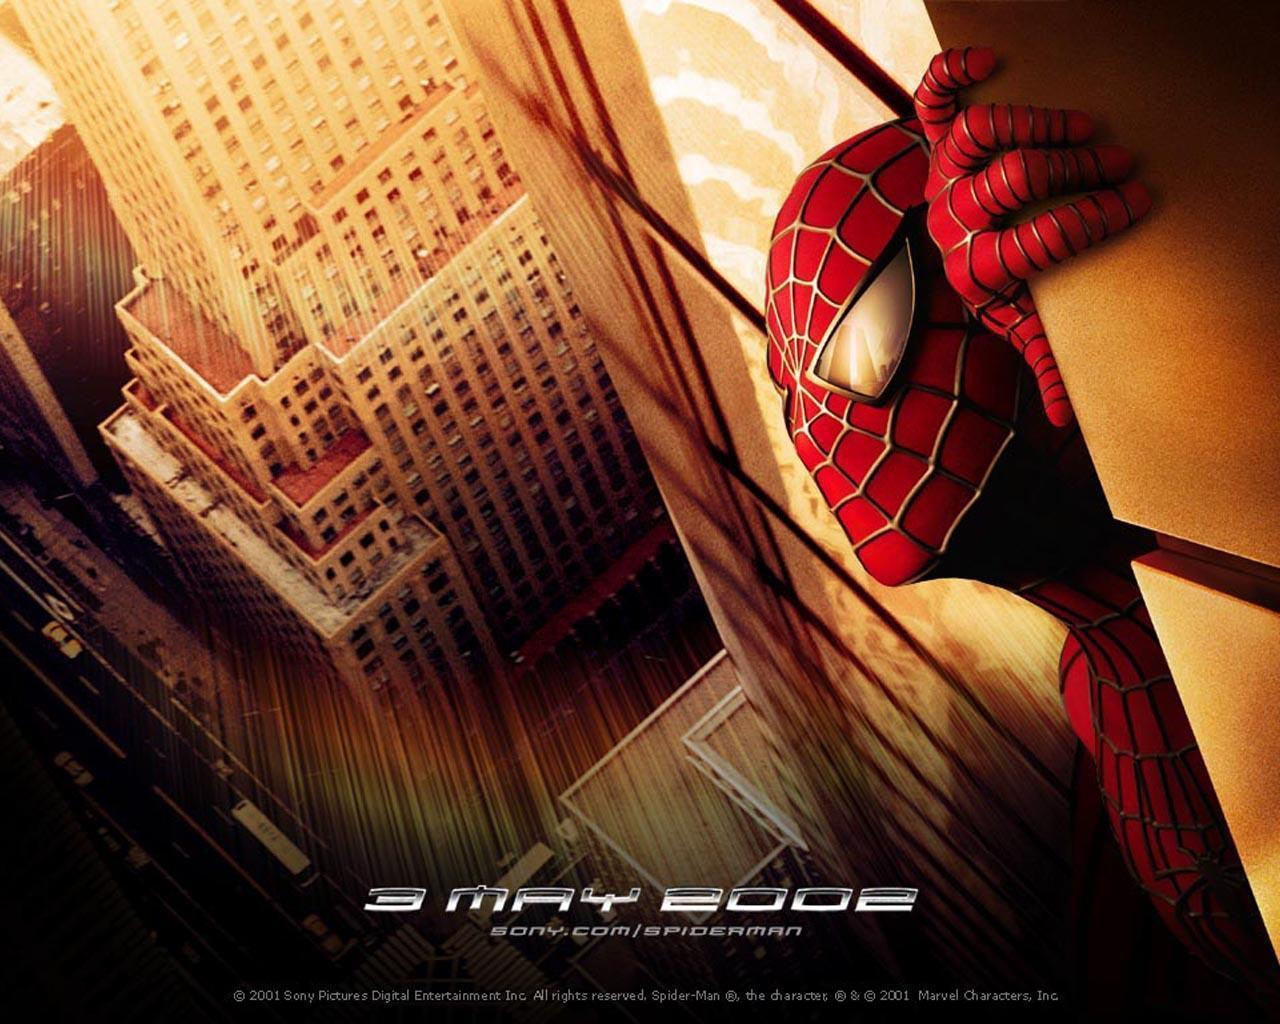 Wallpapers For > Spiderman Hd Wallpapers For Desktop